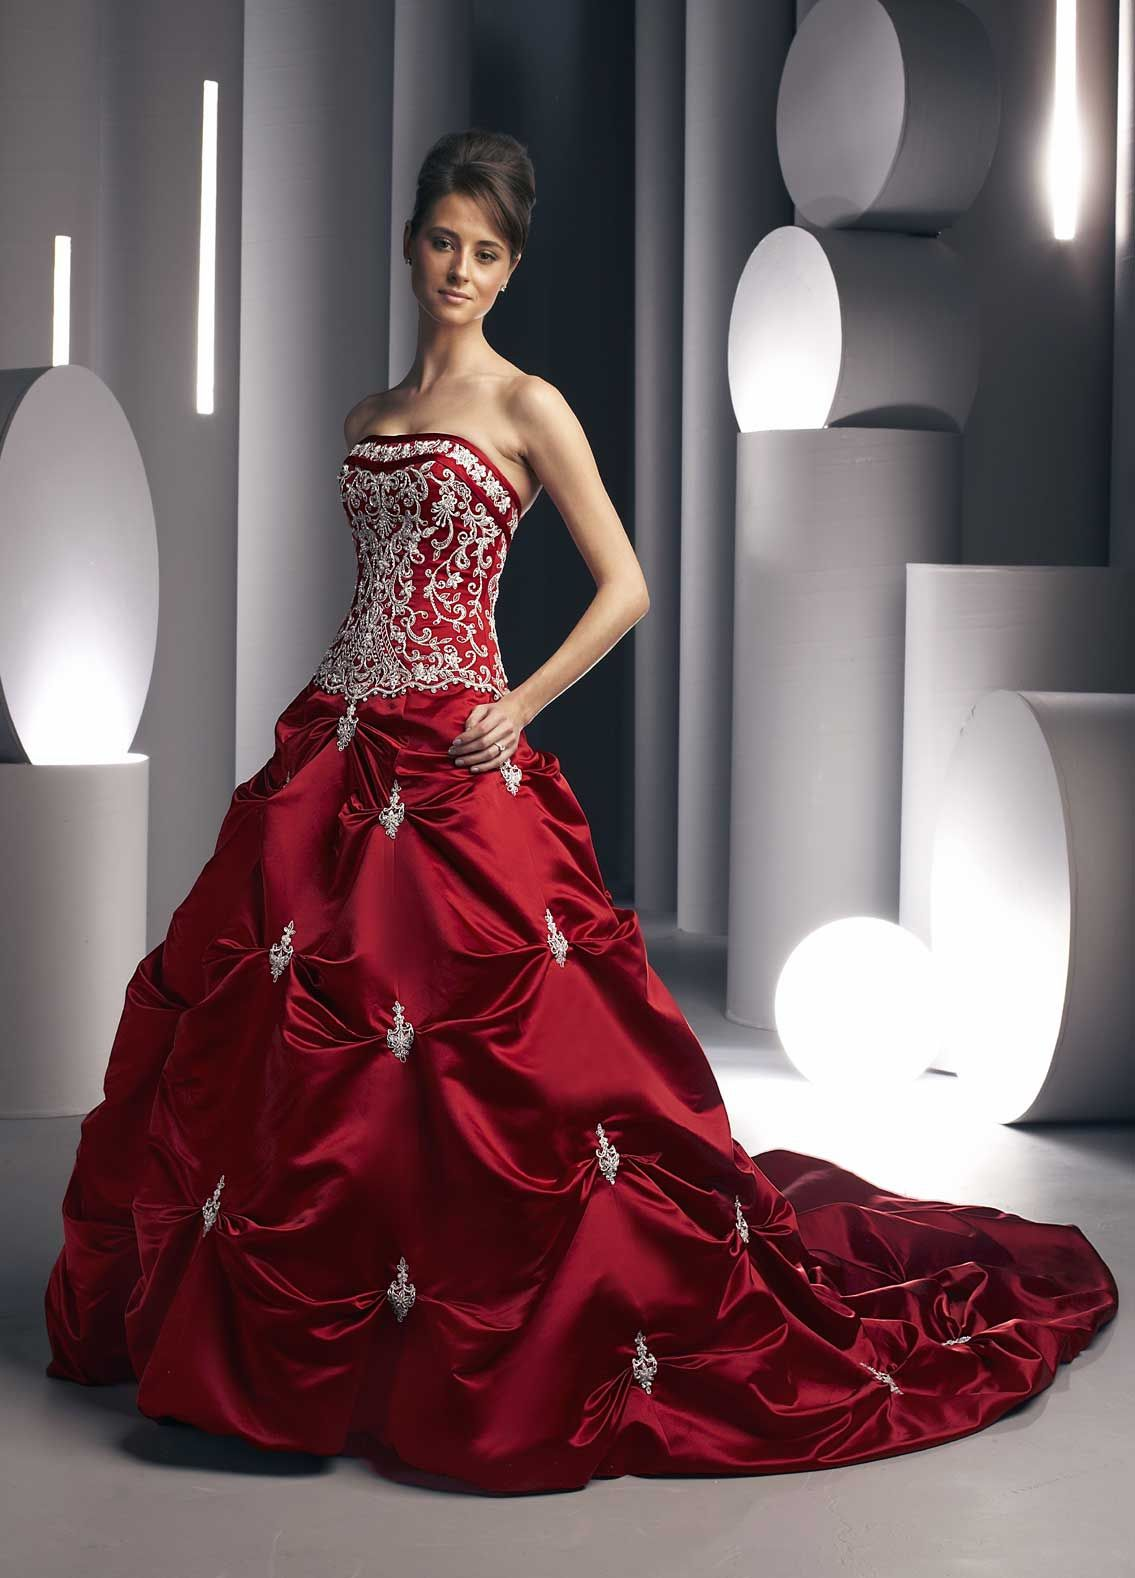 55 Red Wedding Dresses For Sale Plus Size Dresses For Wedding